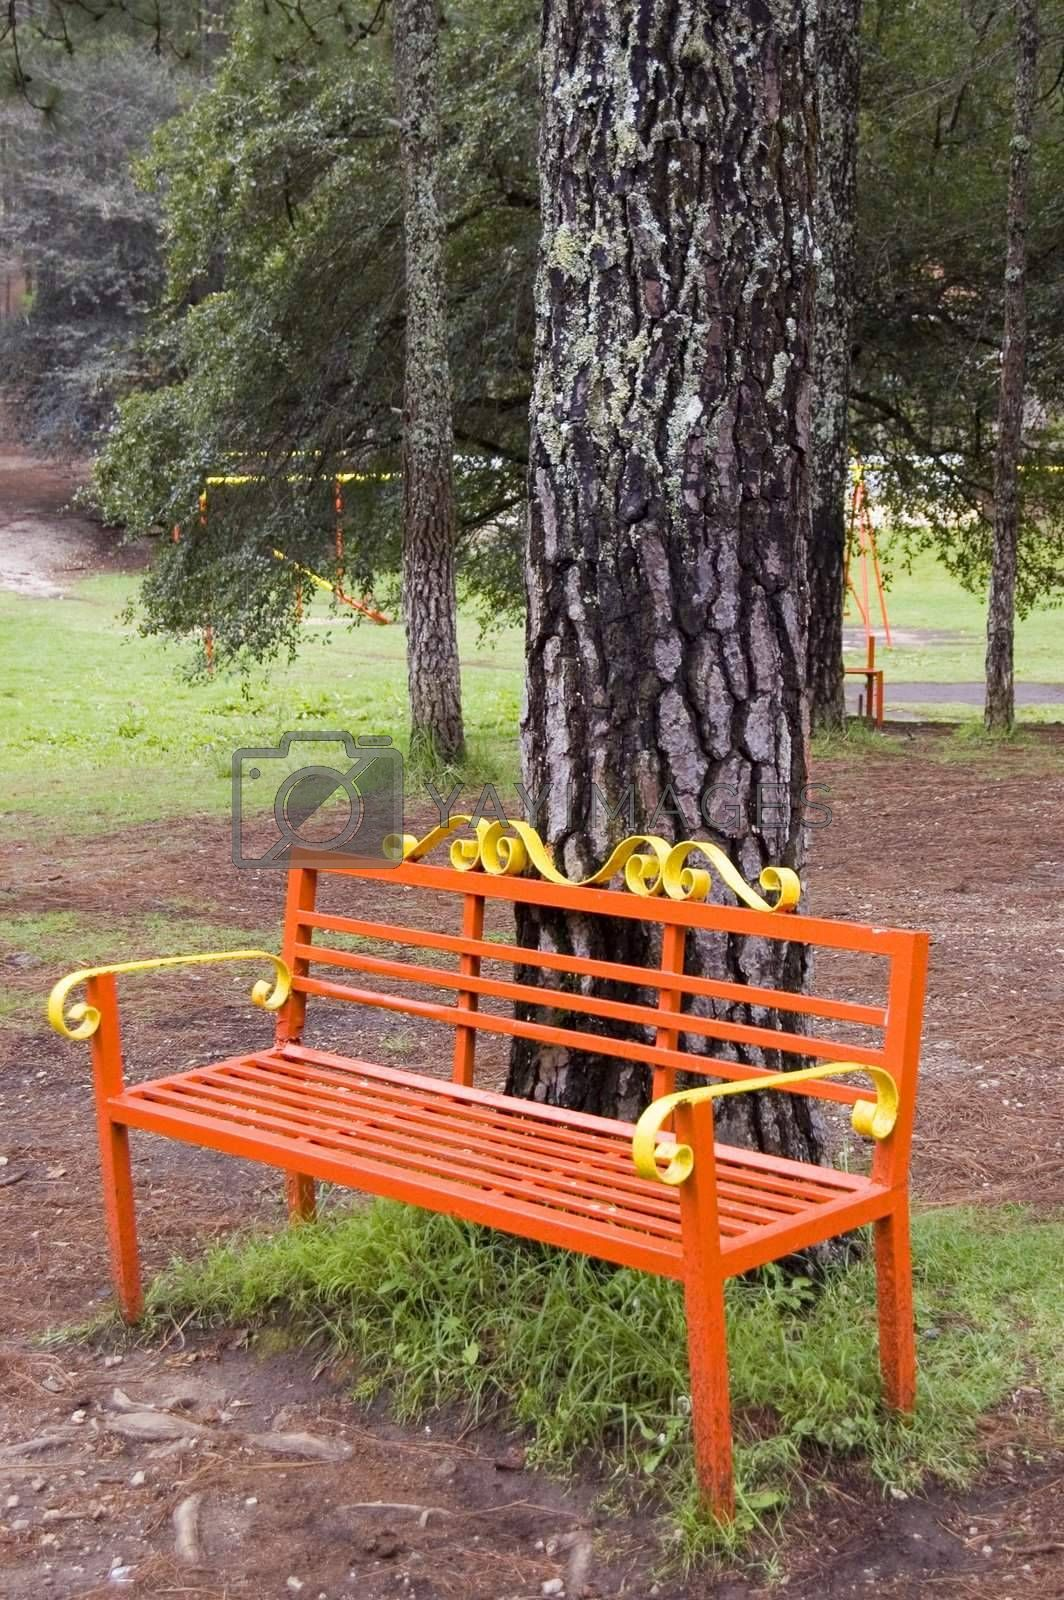 Park Bench in Chiapas by jorgeinthewater